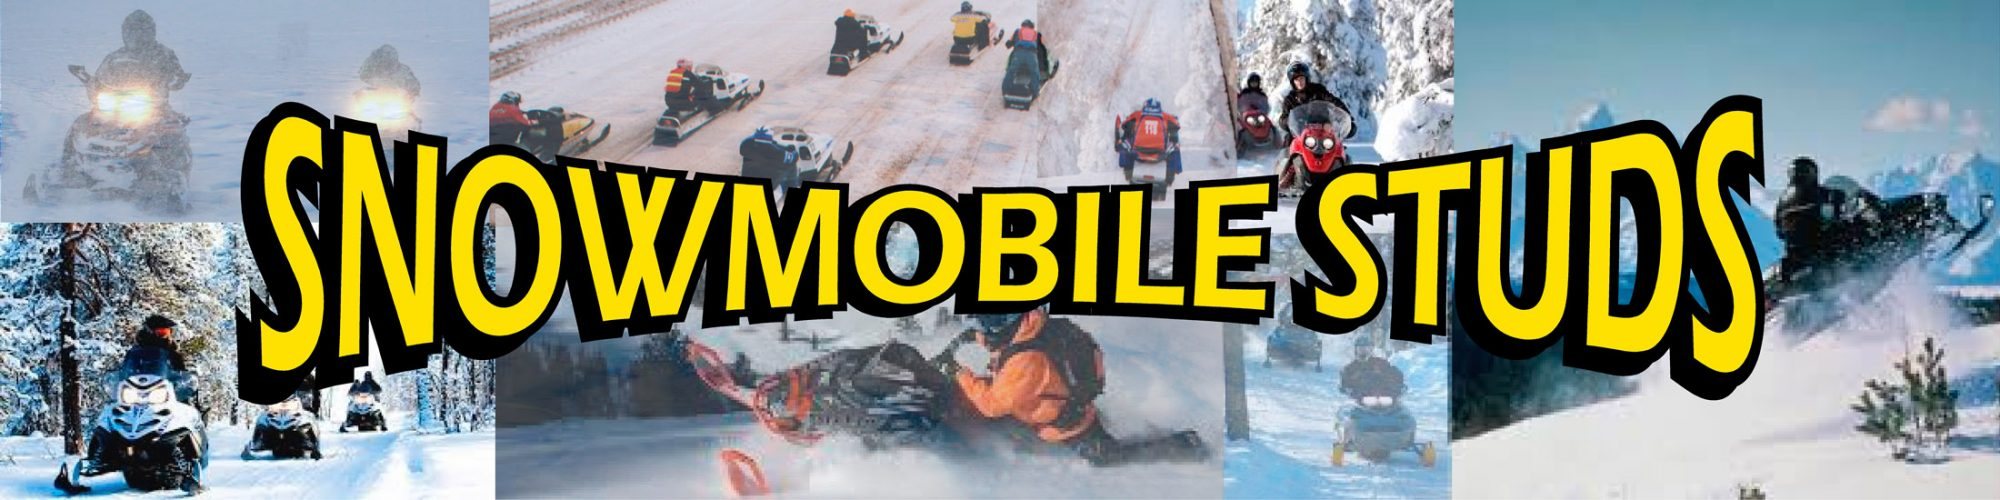 SNOWMOBILE STUDS - header